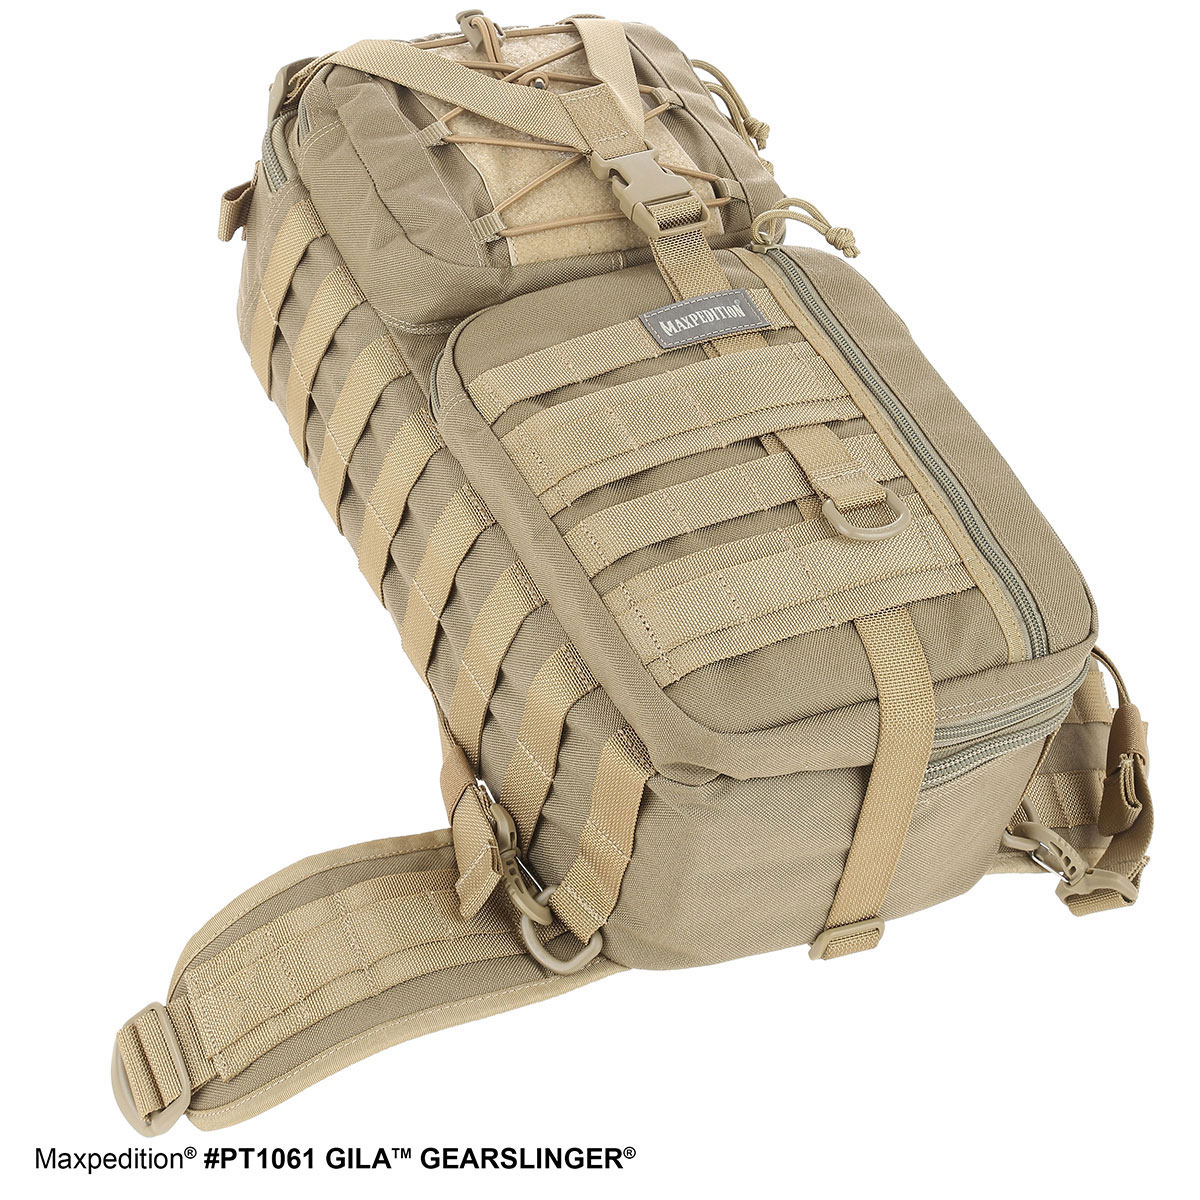 Maxpedition MXPT1061B Black Gila Hunting Tactical Gear Gearslinger Backpack Bag